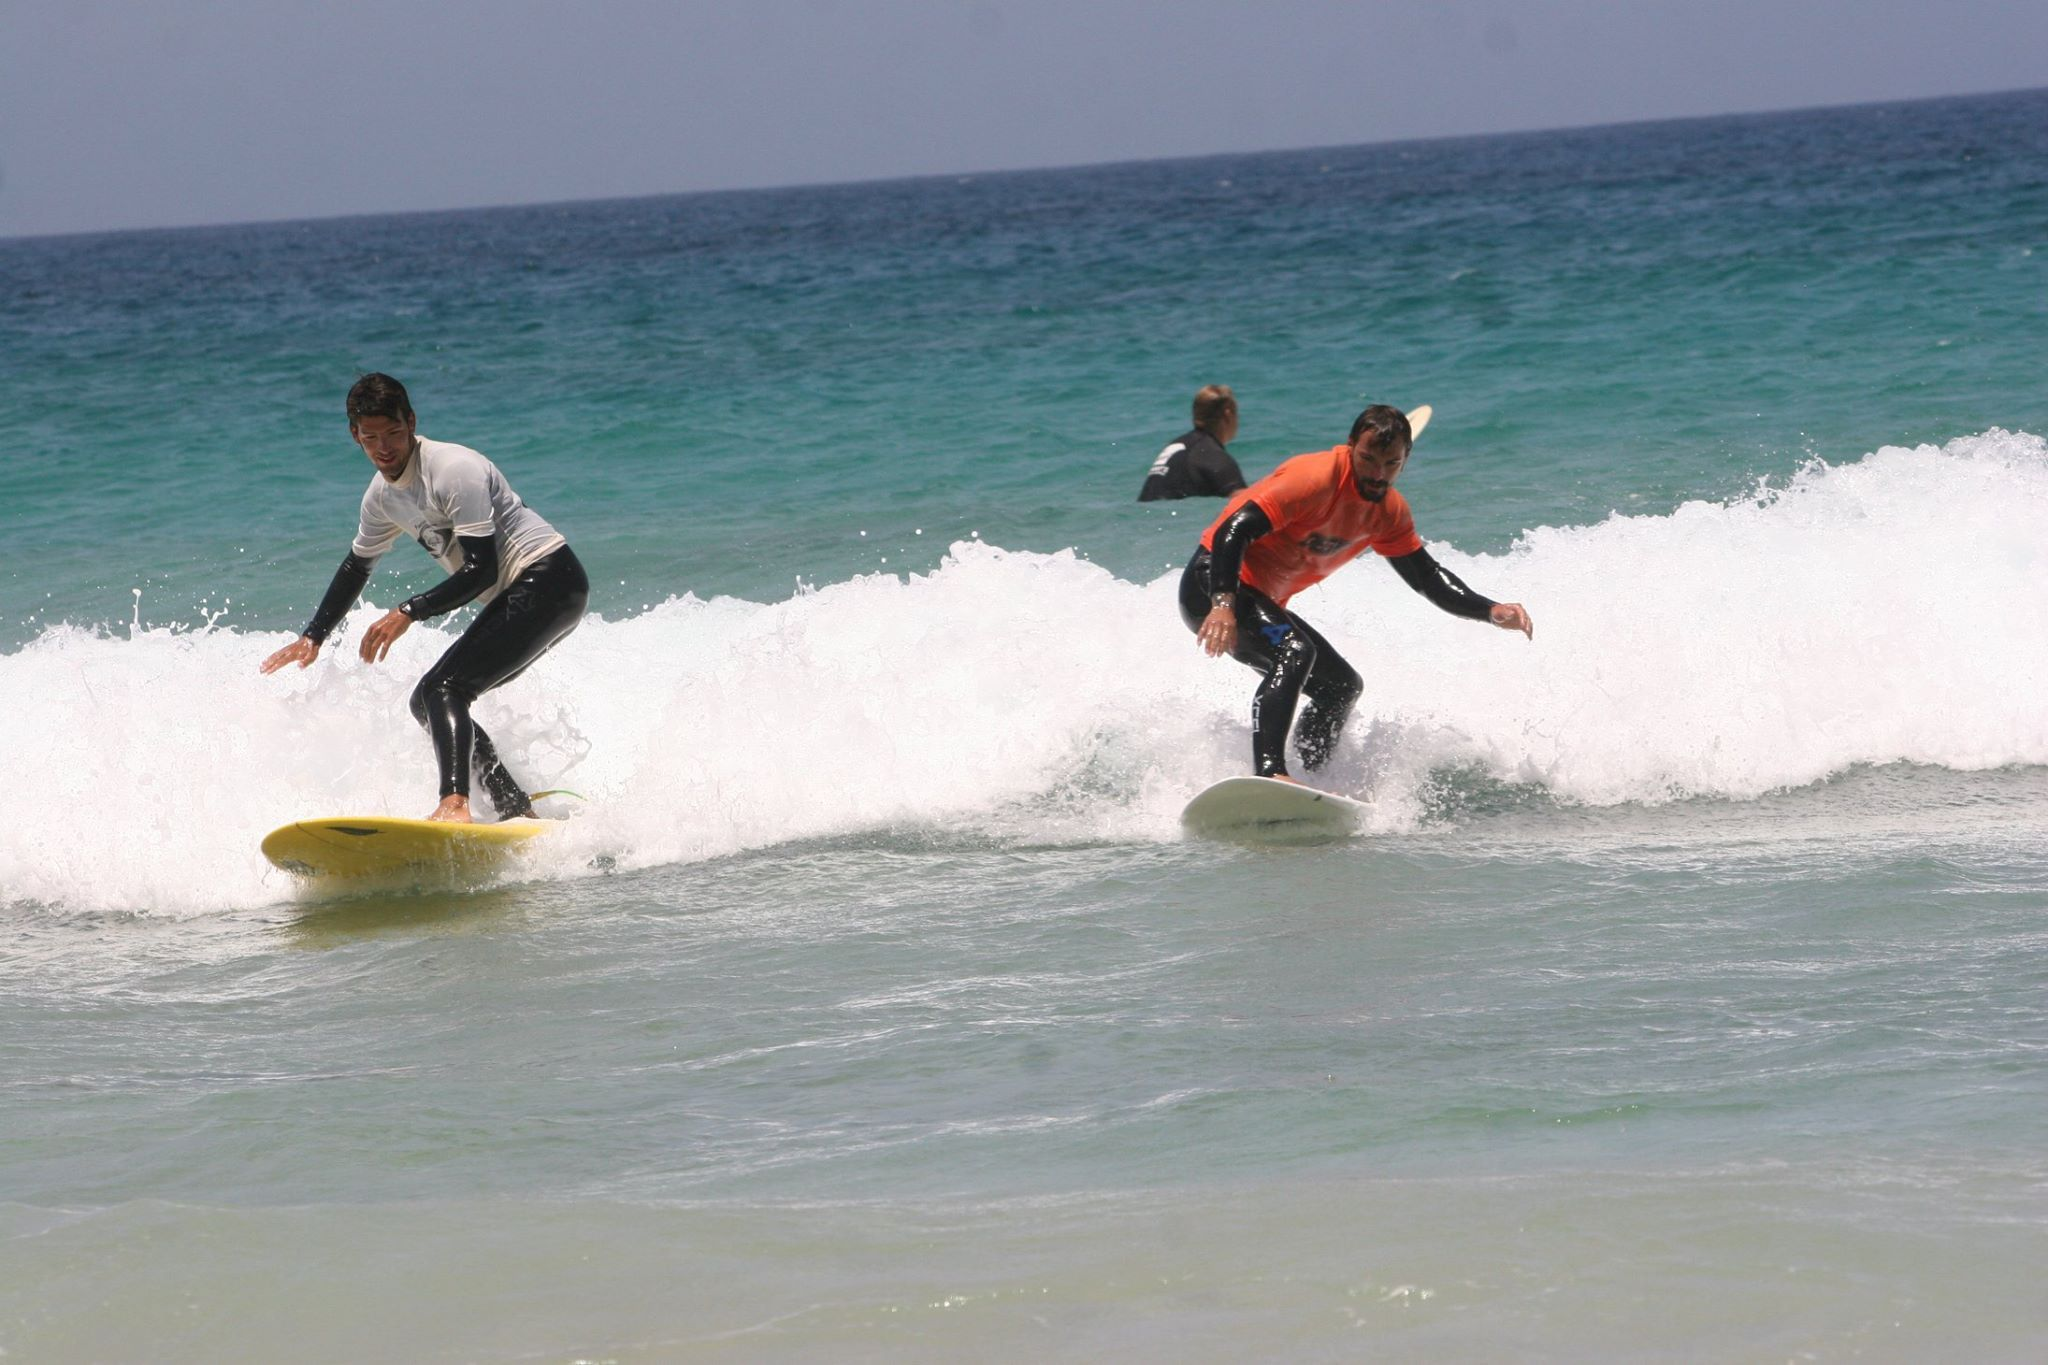 Rental of surf equipment in El Cotillo